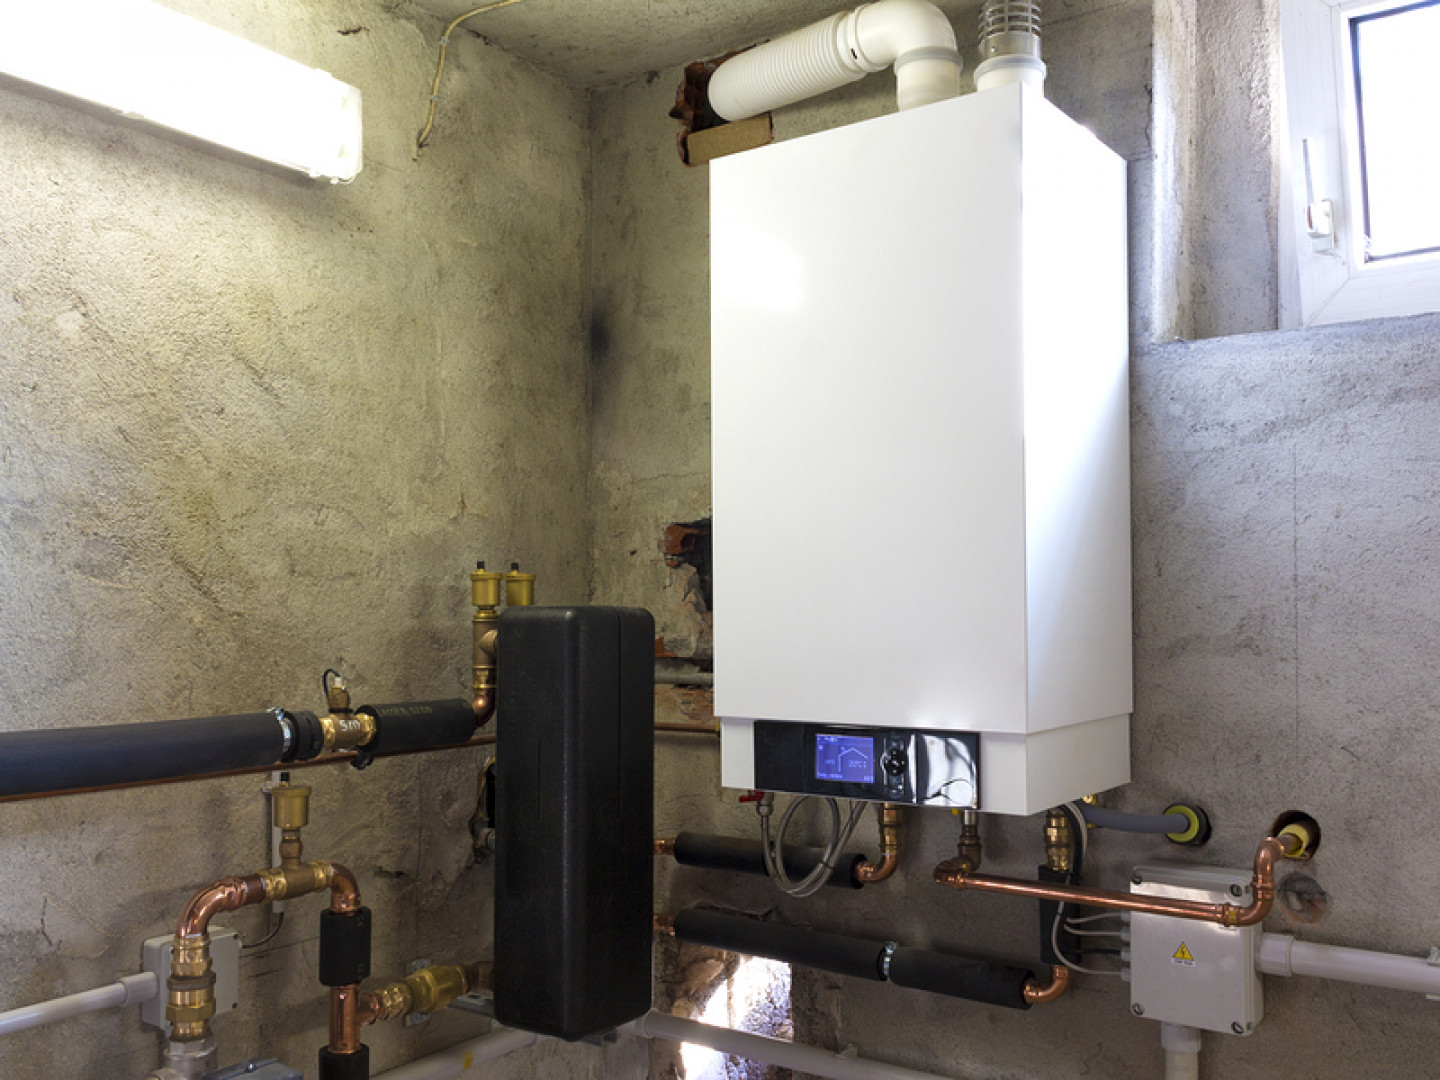 Keep up with maintaining your boiler